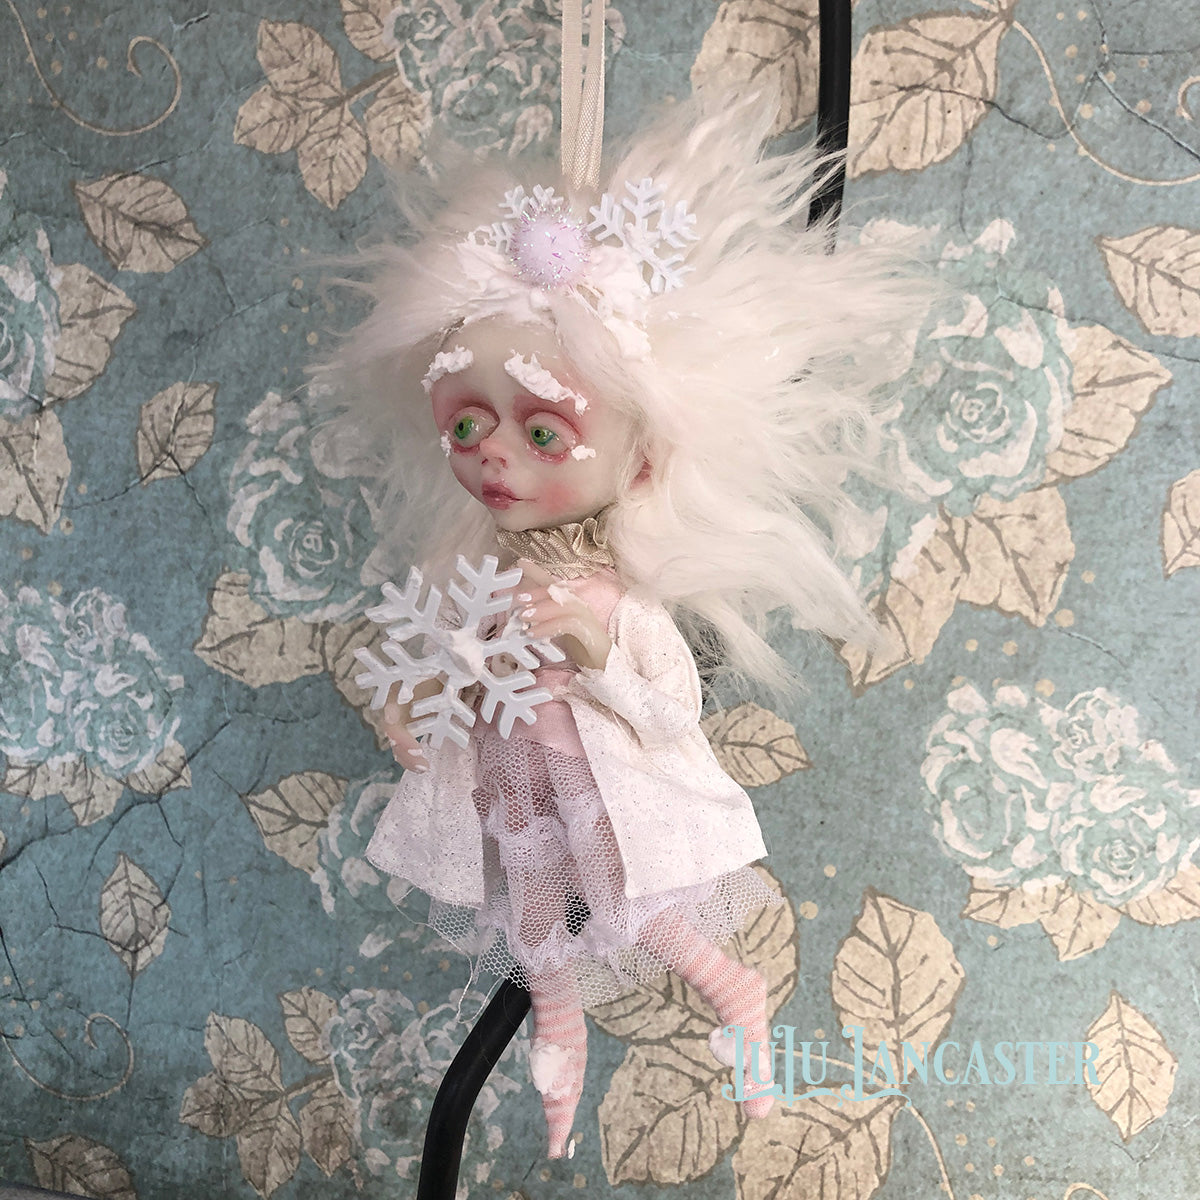 Nippy Mini hanging Frostie Ornament OOAK Art Doll LuLu Lancaster